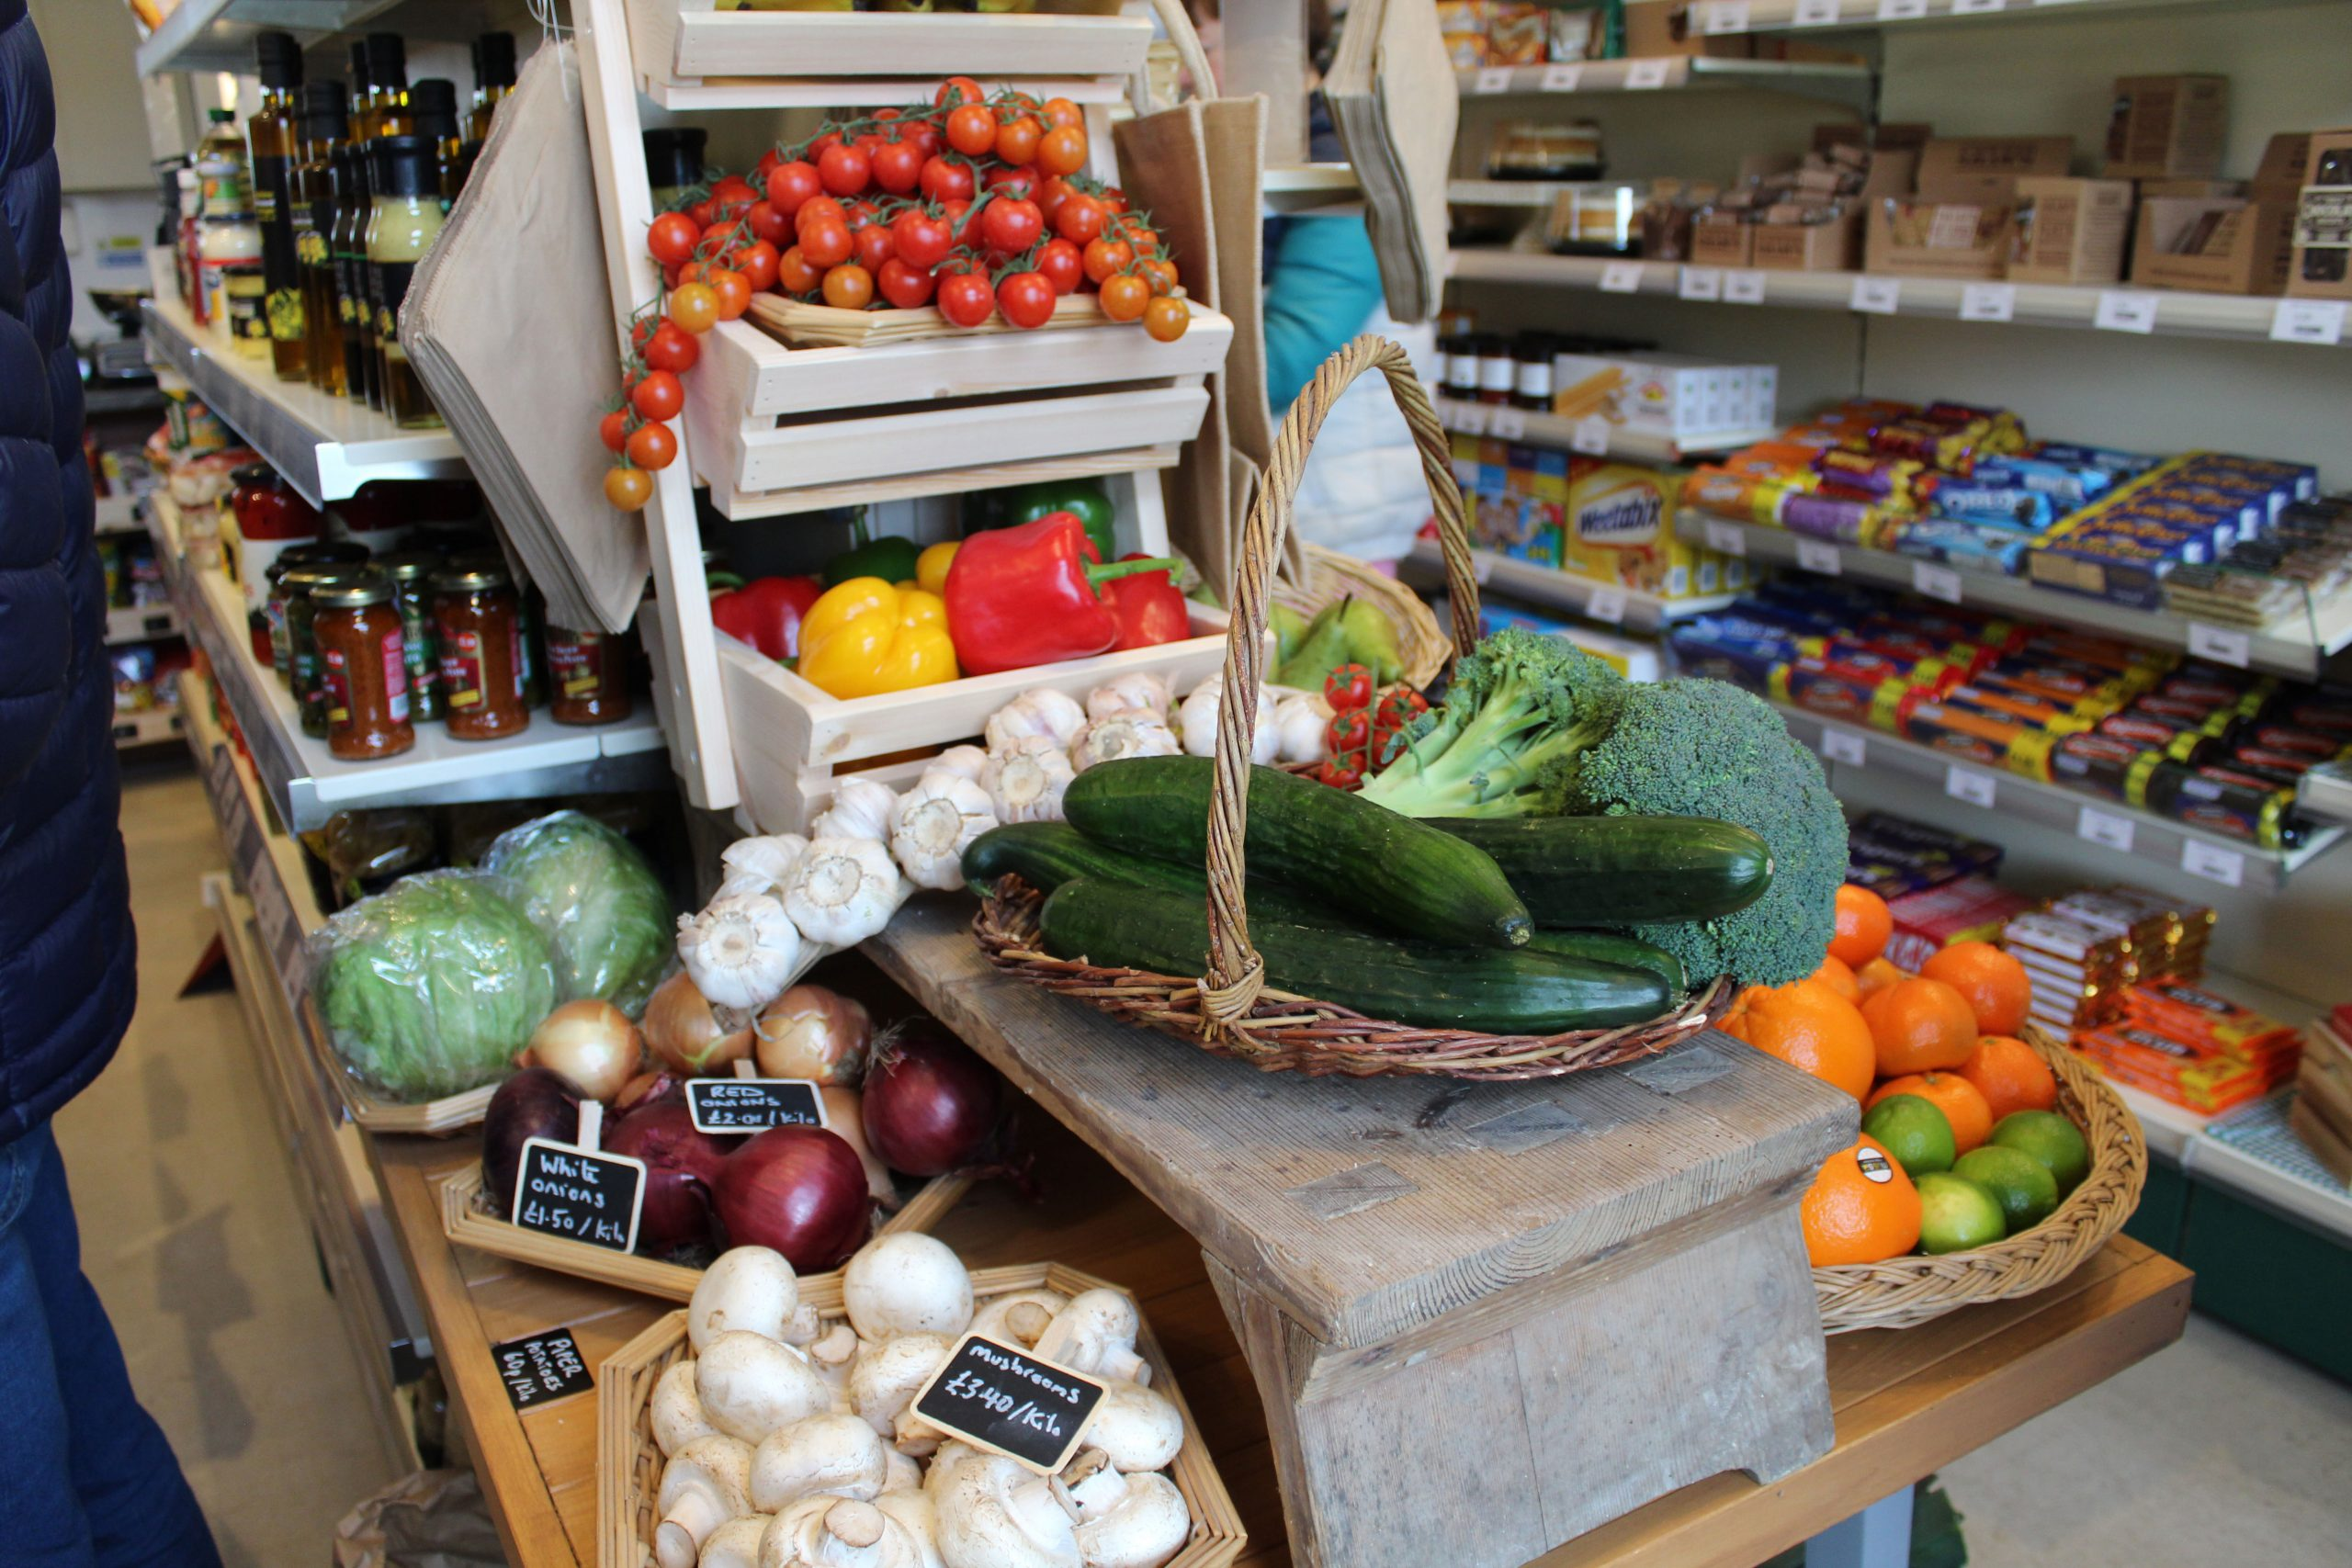 We have lots of fresh produce